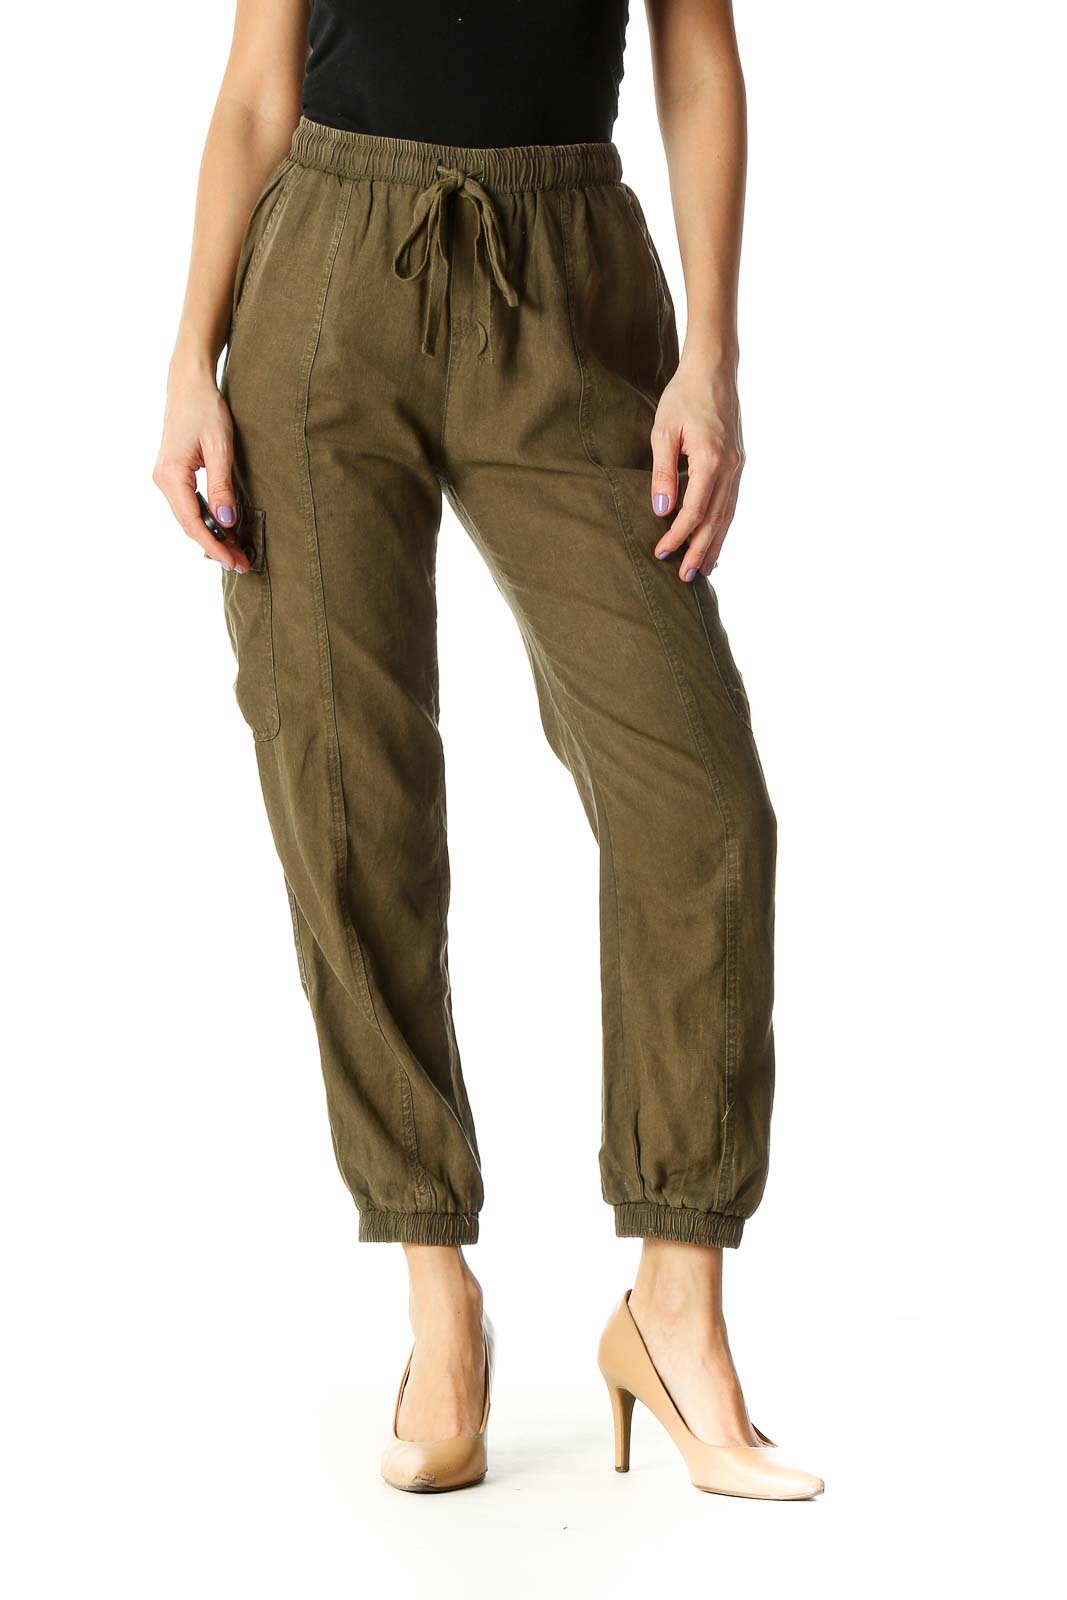 Brown Solid Casual Pants Front